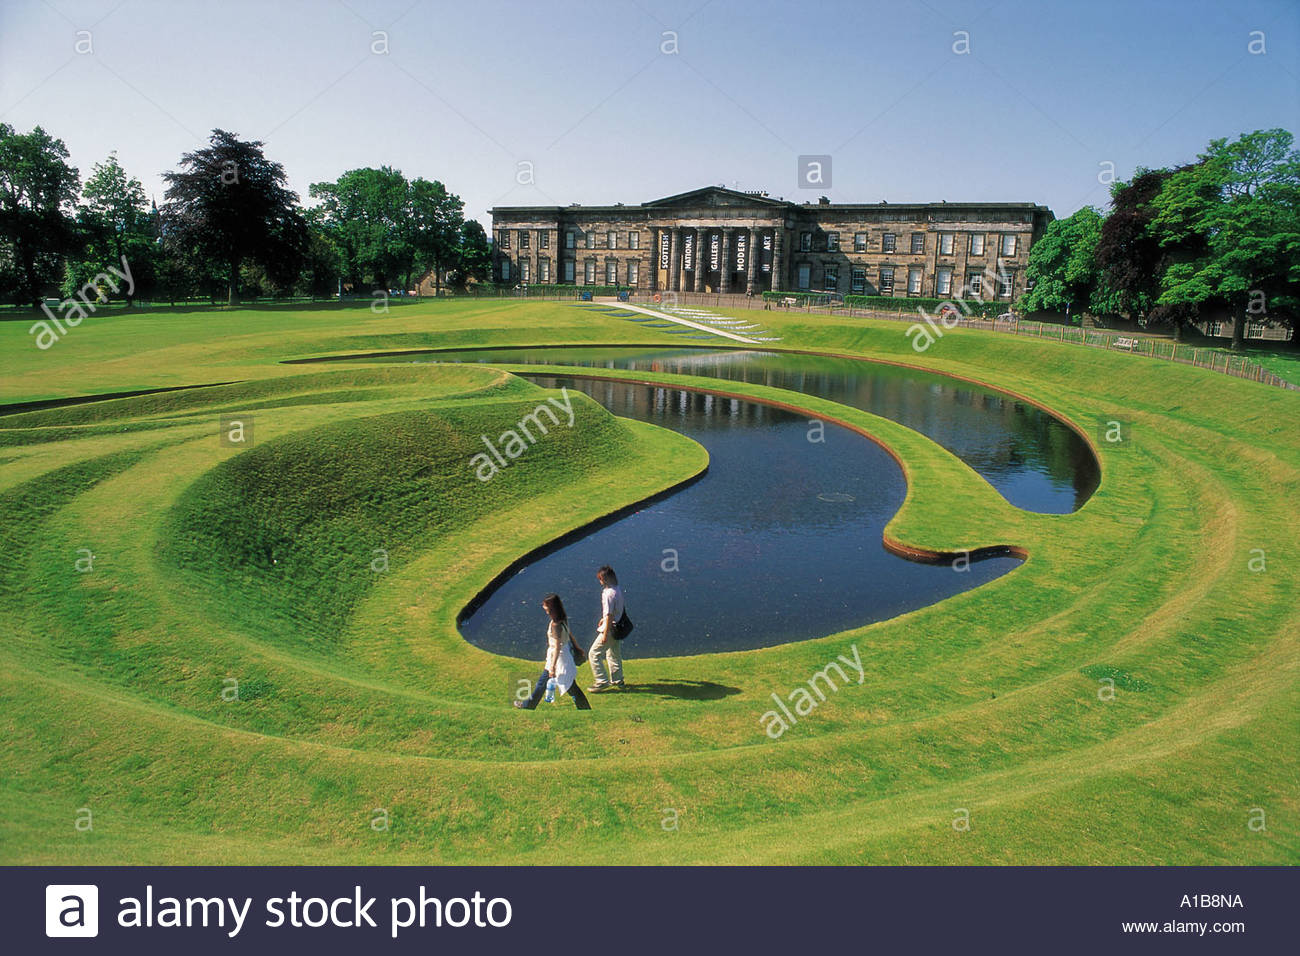 LOOKING DOWN TO VISITORS WALKING ROUND THE LANDFORM INSTALLATION UEDA AT THE SCOTTISH NATIONAL GALLERY OF MODERN ART EDINBURGH - Stock Image